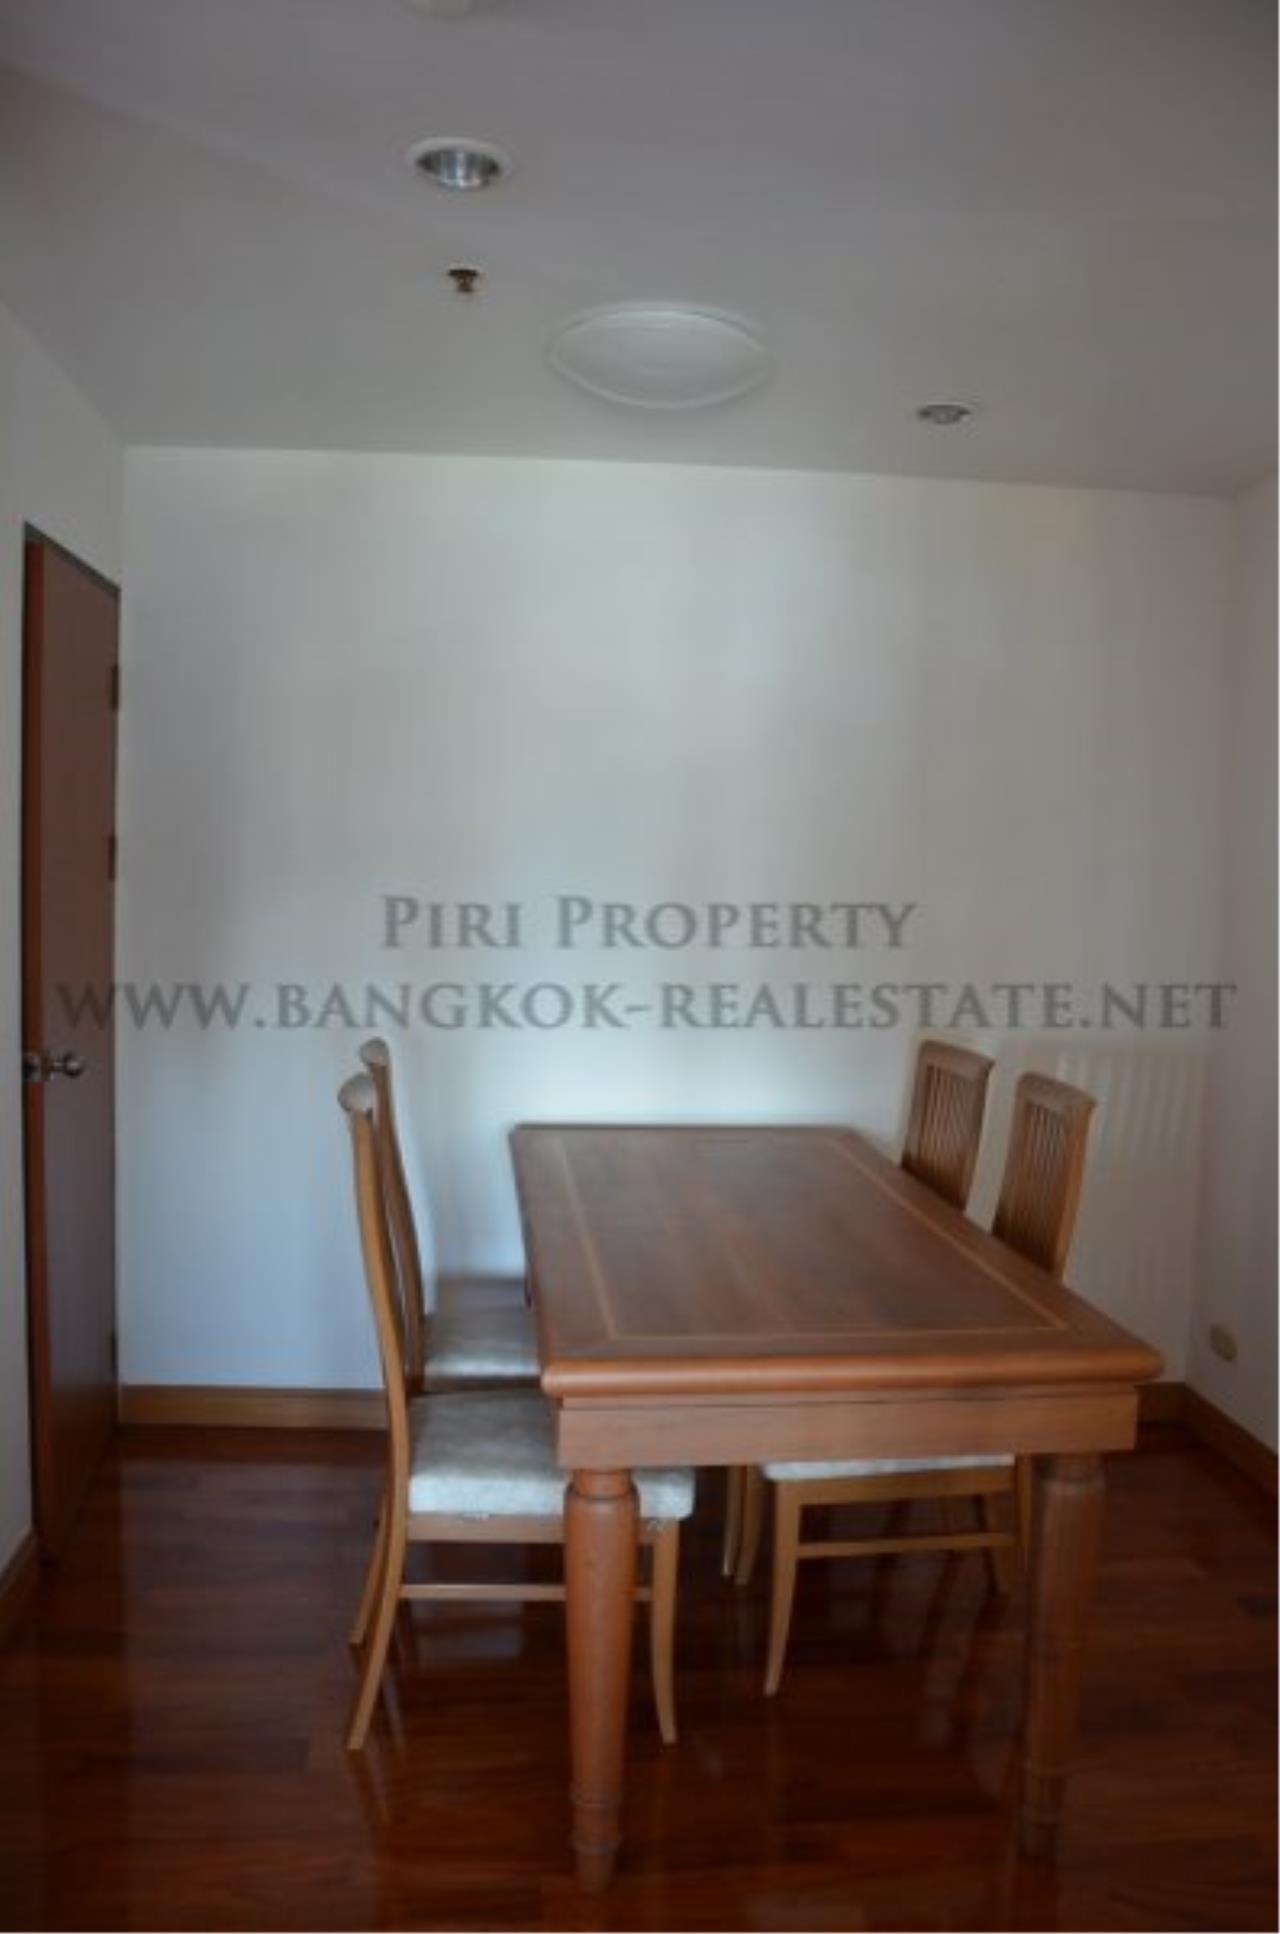 Piri Property Agency's Spacious 3 Bedroom Condo in Ekkamai - 128 SQM for 50K - Top View Tower - 30th Floor 13